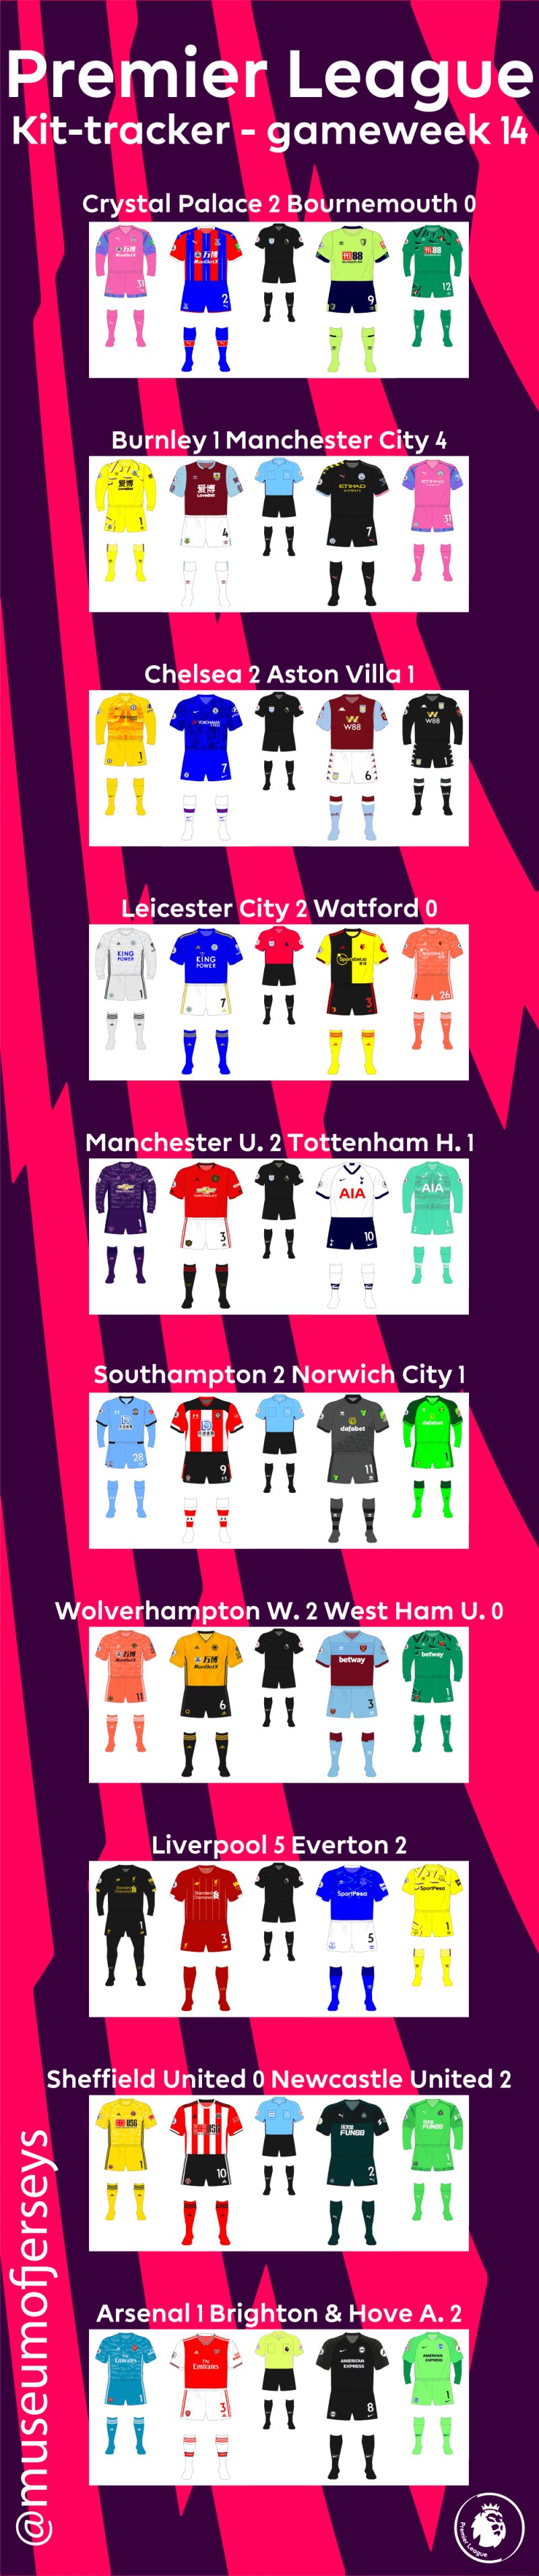 2019-2020-Premier-League-Kit-Tracker-Gameweek-15-long-01